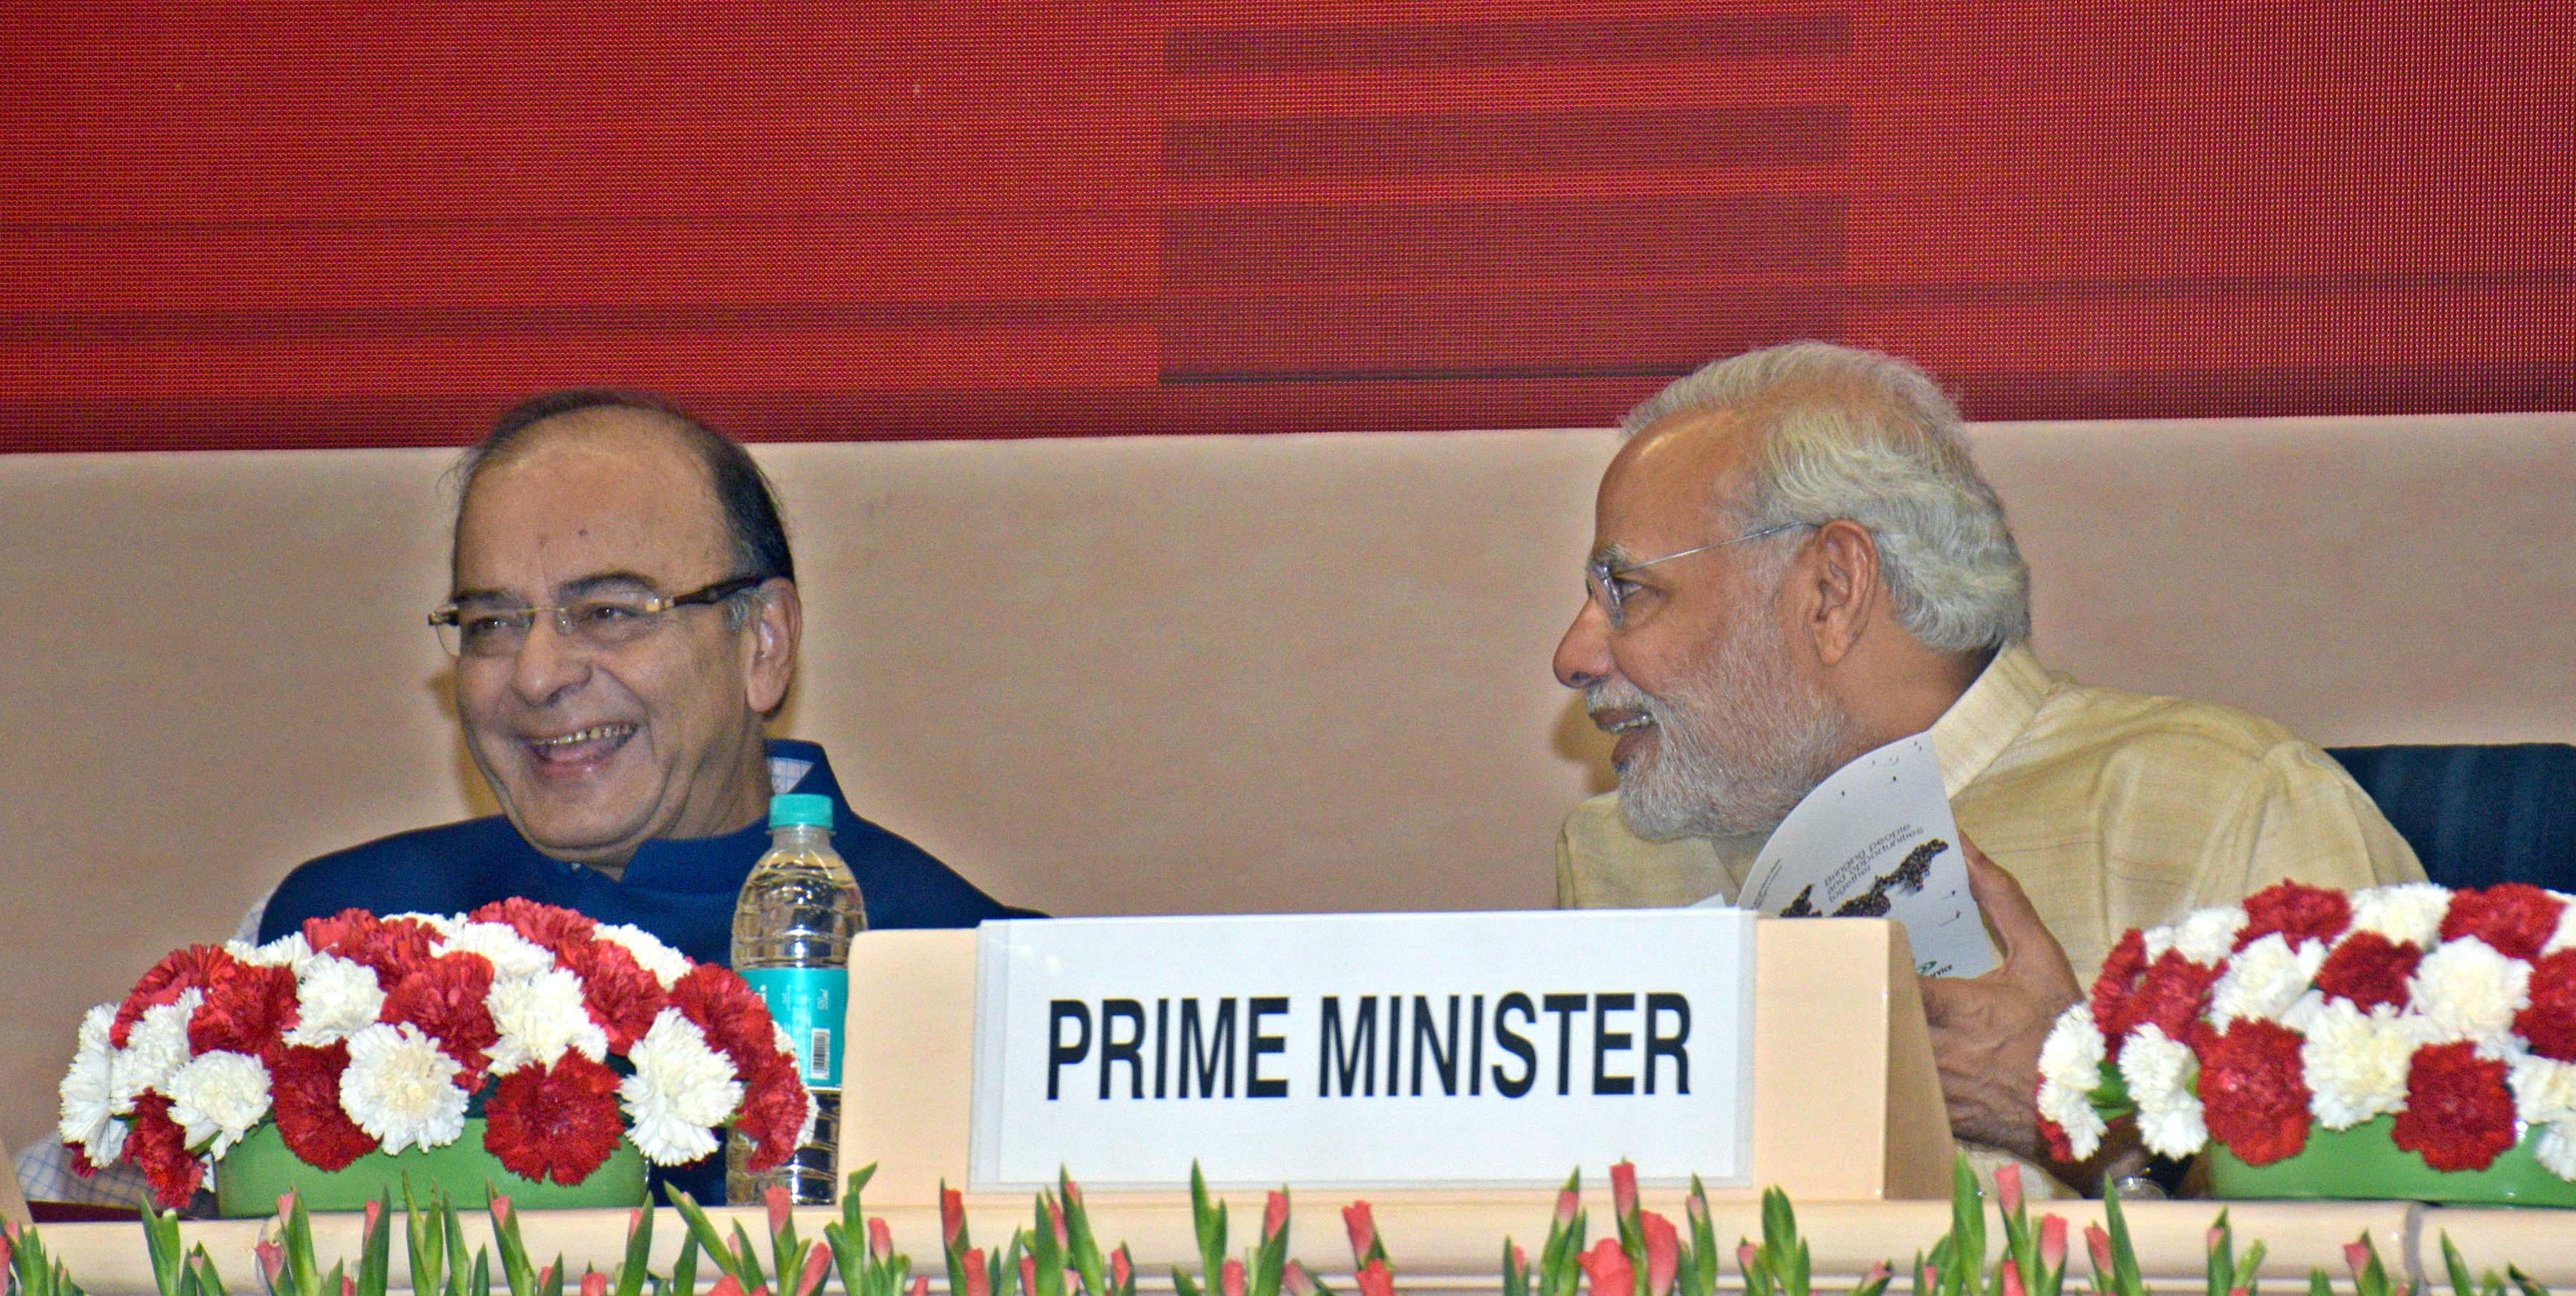 Prime Minister Narendra Modi in conversation with Union Finance Minister Arun Jaitley at the 46th session of Indian Labour Conference in New Delhi on Monday. (UNI)